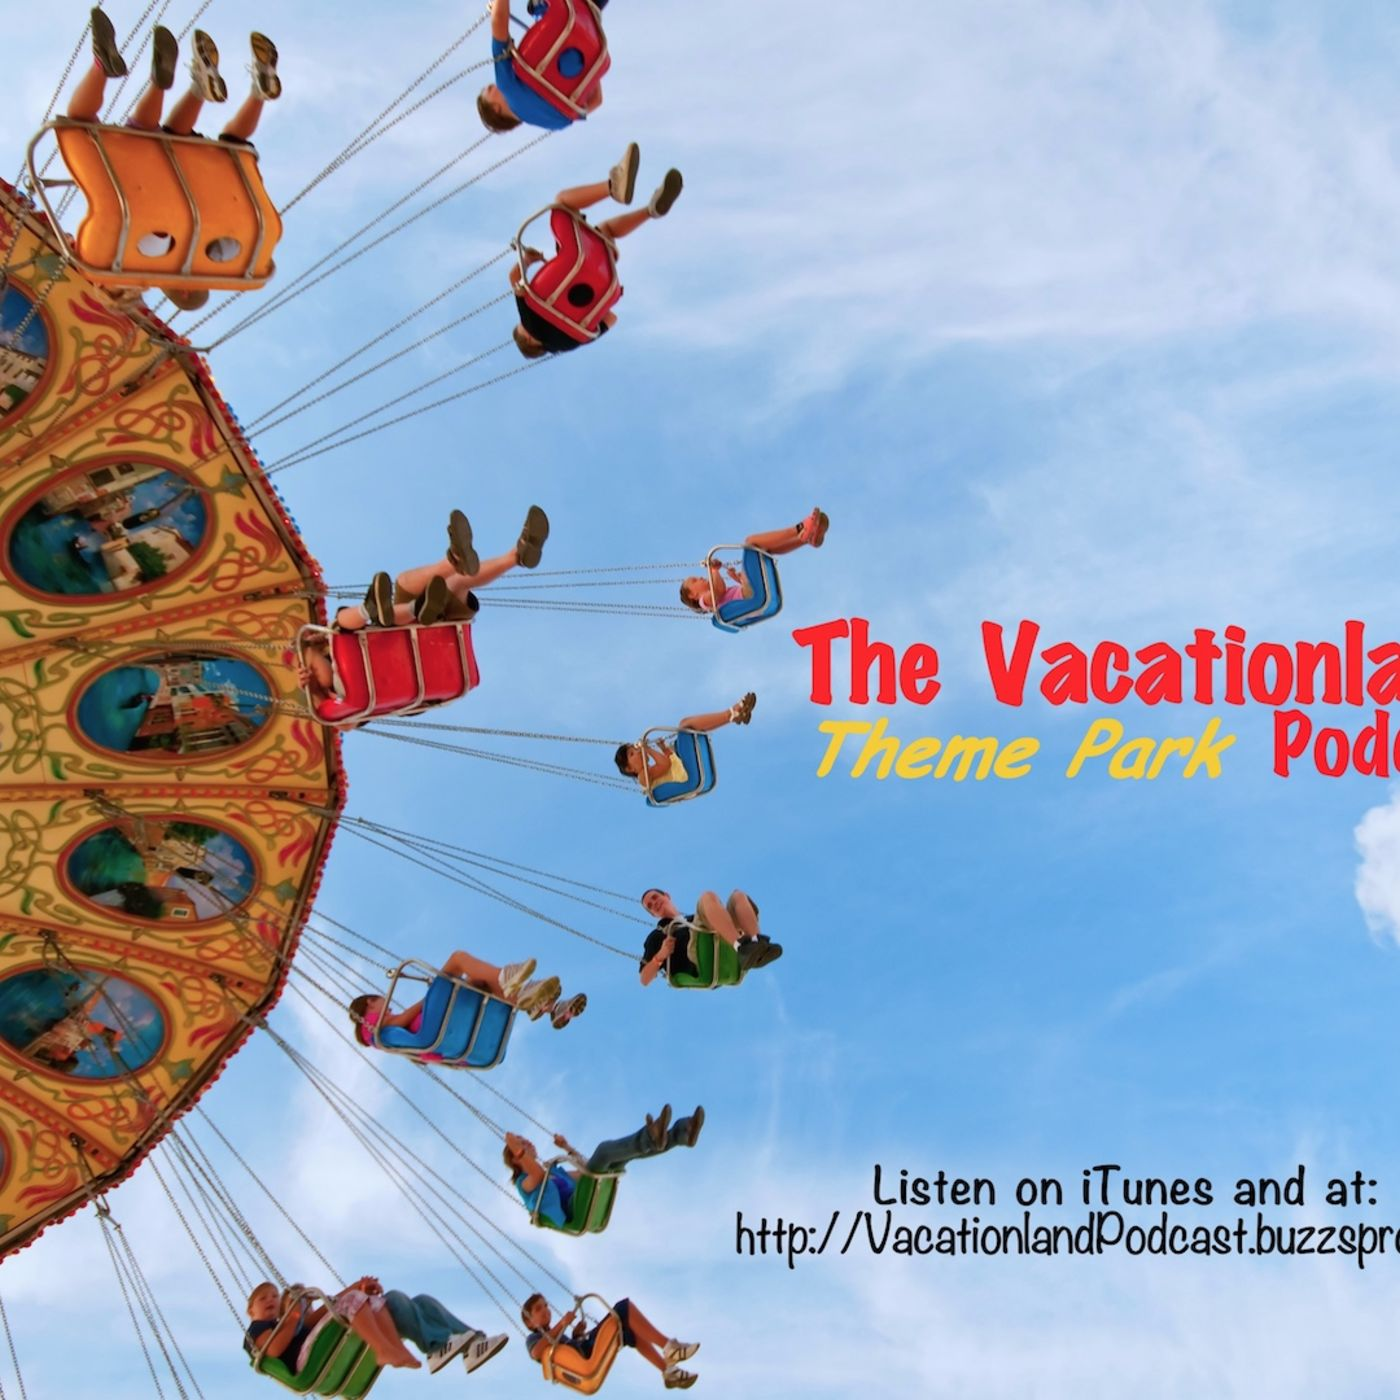 The Vacationland Theme Park Podcast